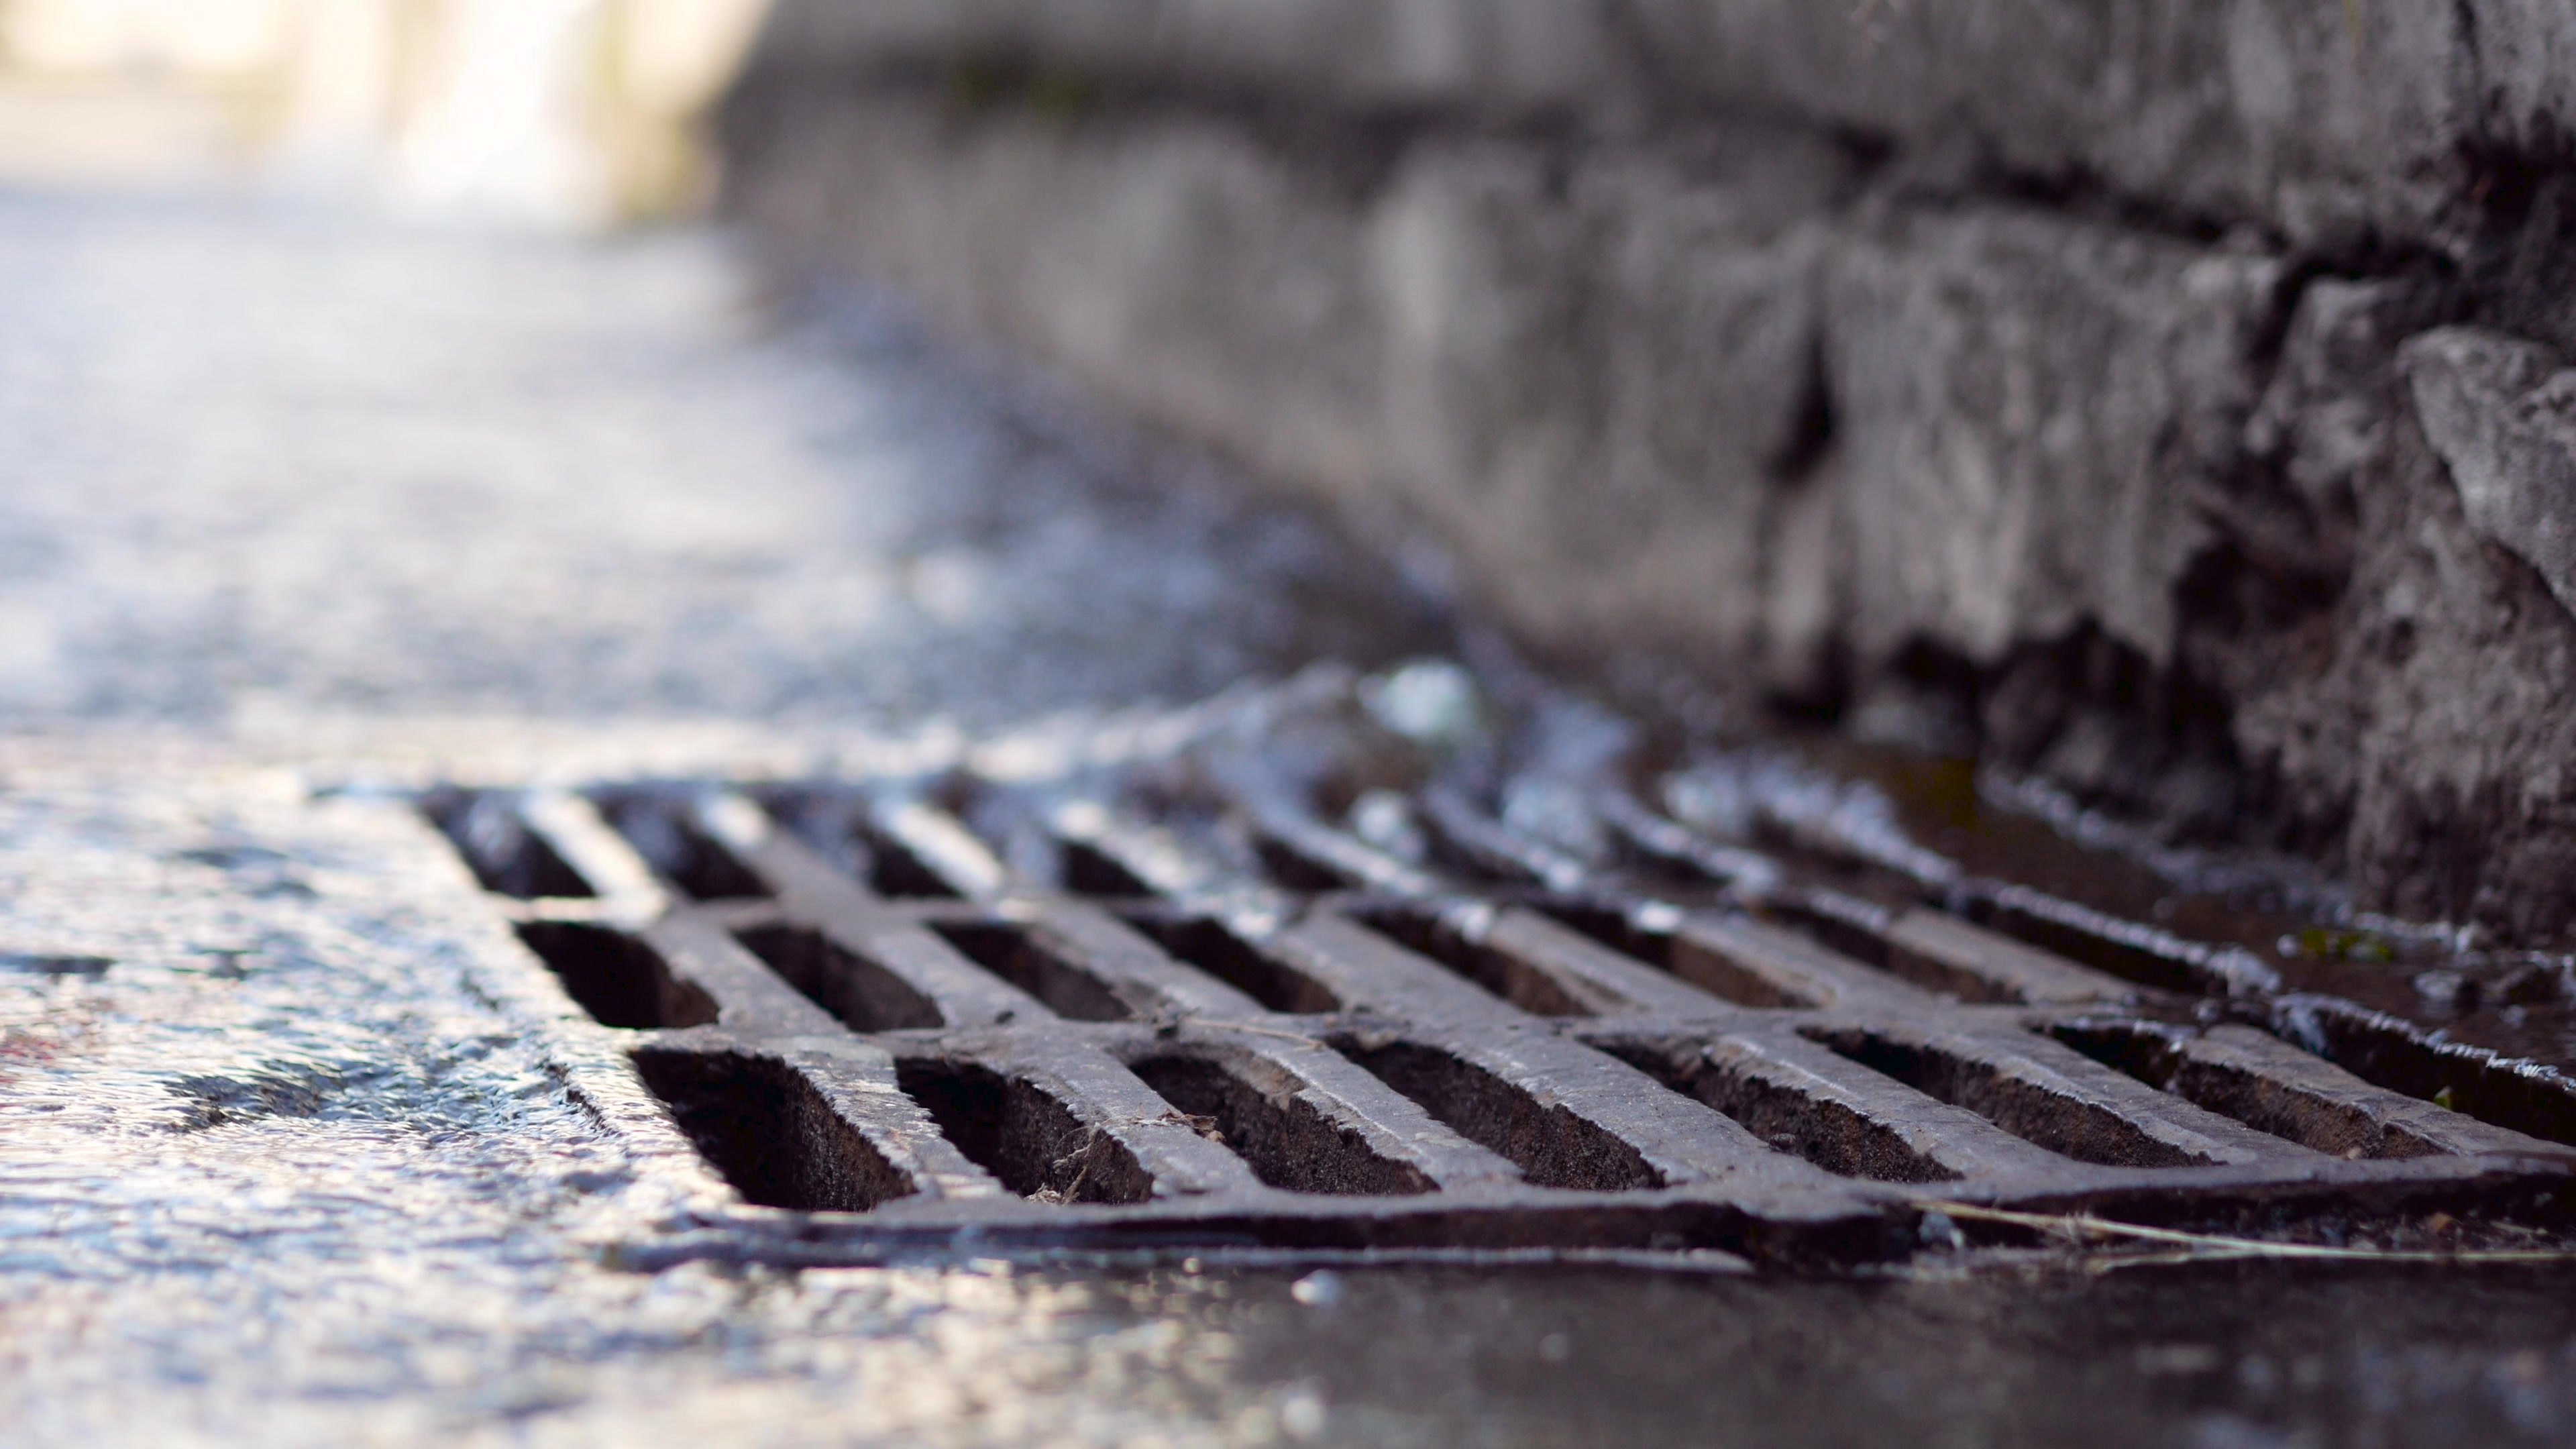 Water running into a storm drain